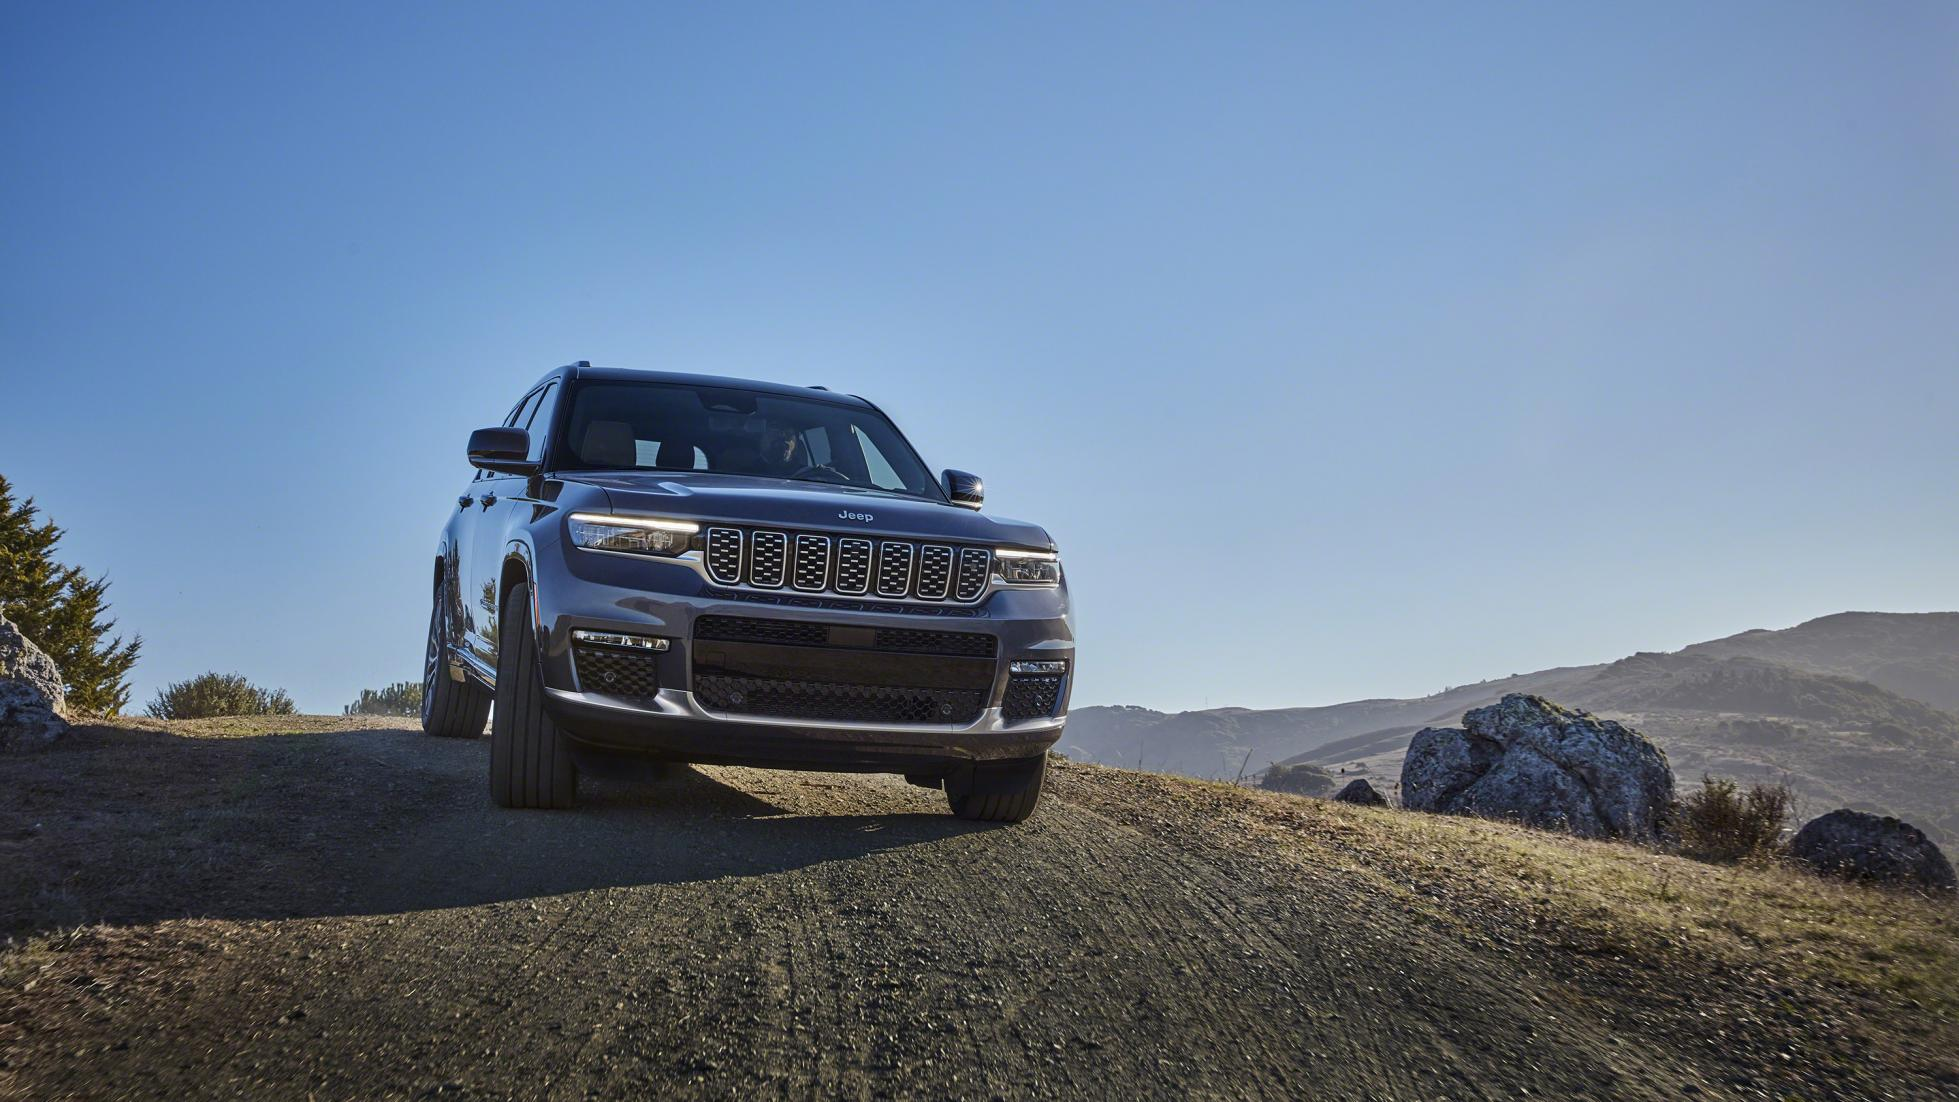 The Jeep Grand Cherokee L front detail